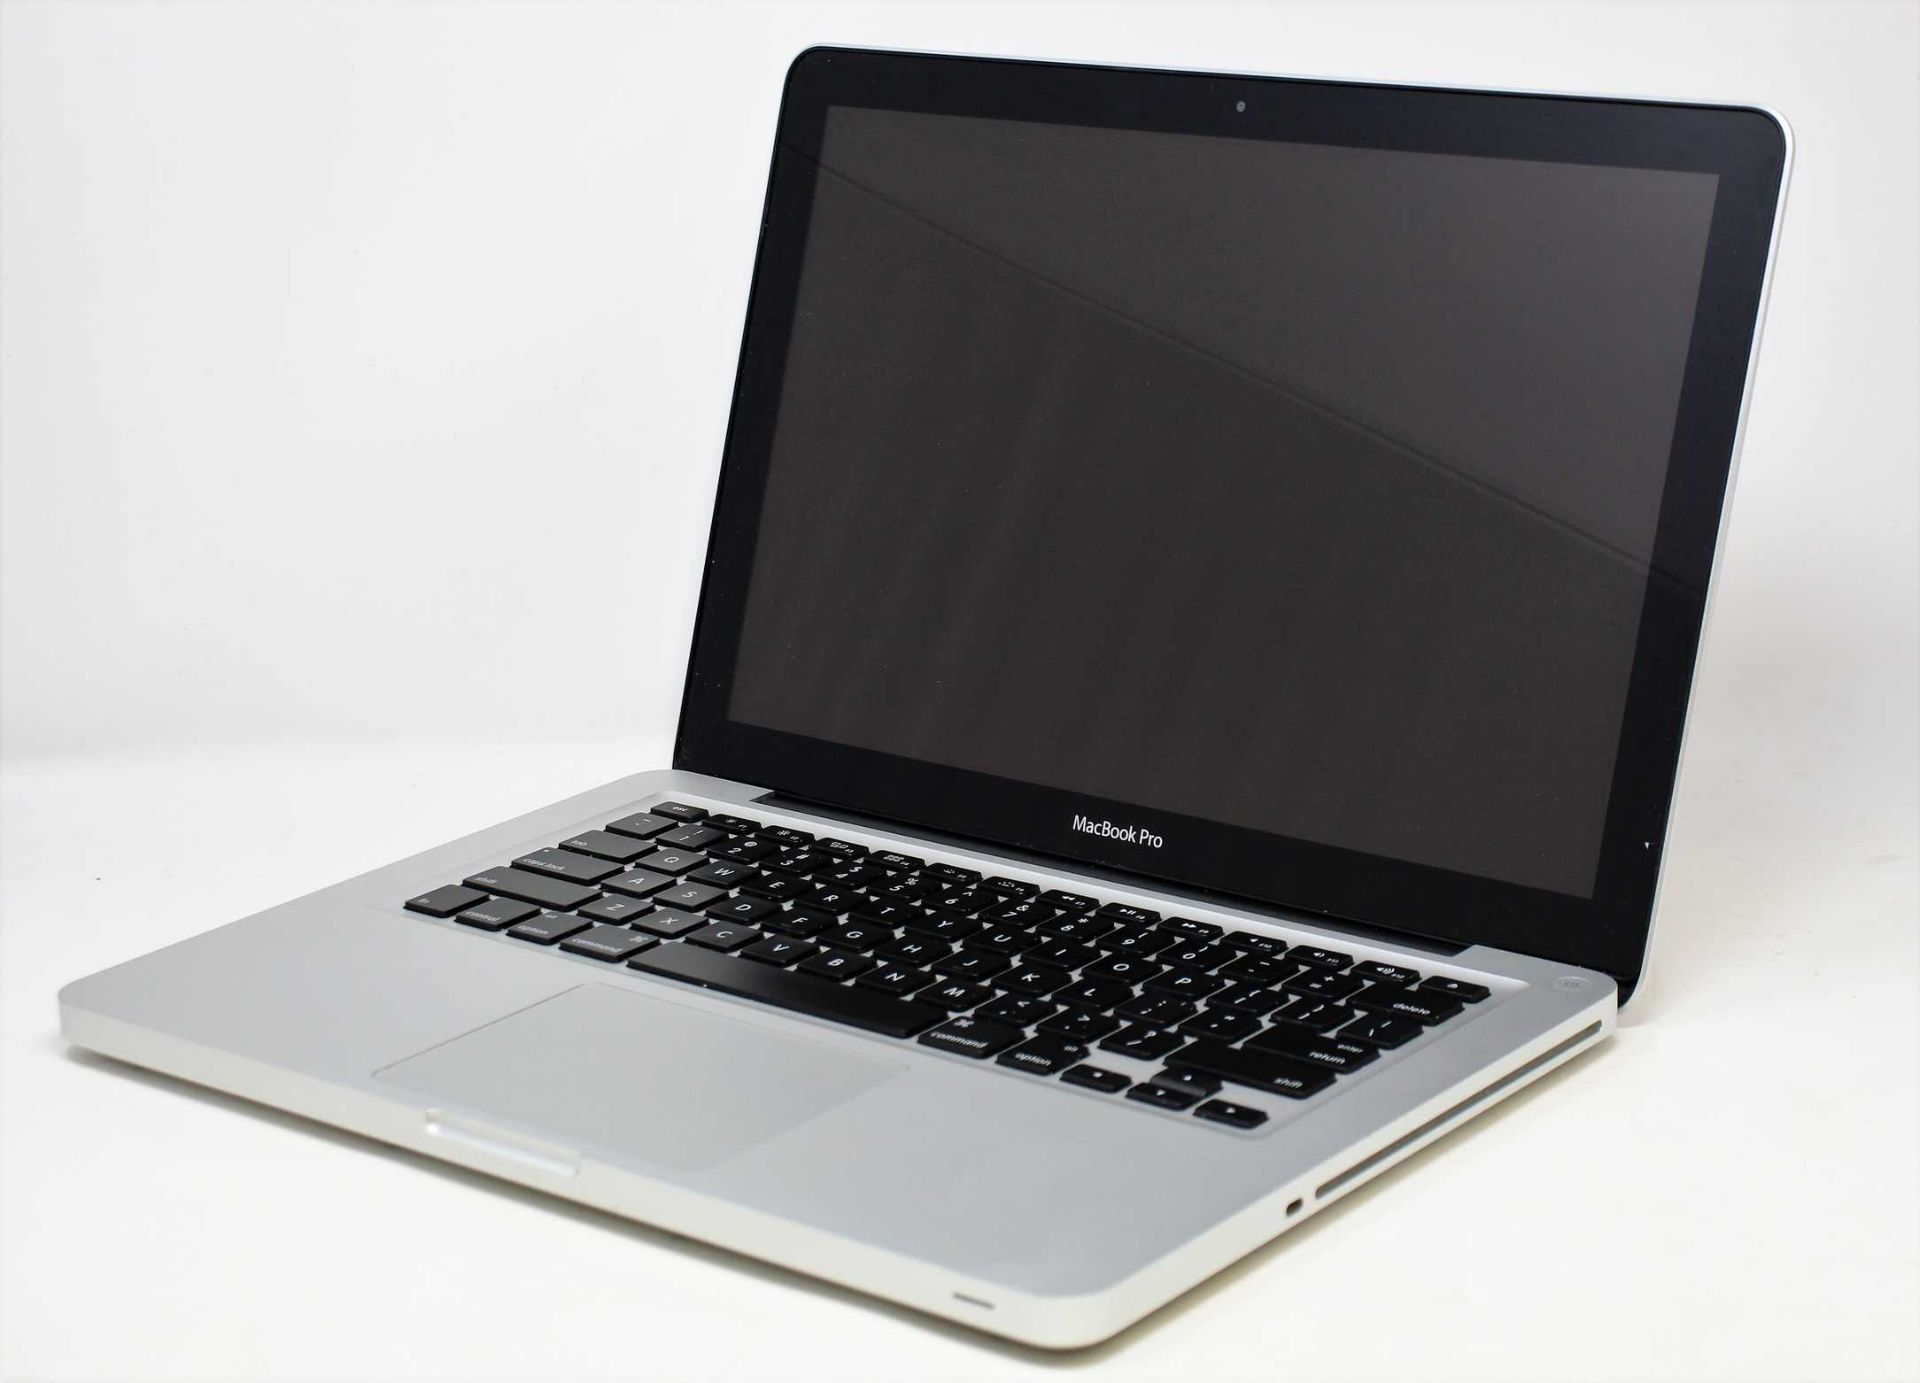 A pre-owned MacBook Pro (13-inch, Mid 2012) A1278 in Silver with Intel Core i5 2.5GHz, 8GB RAM,